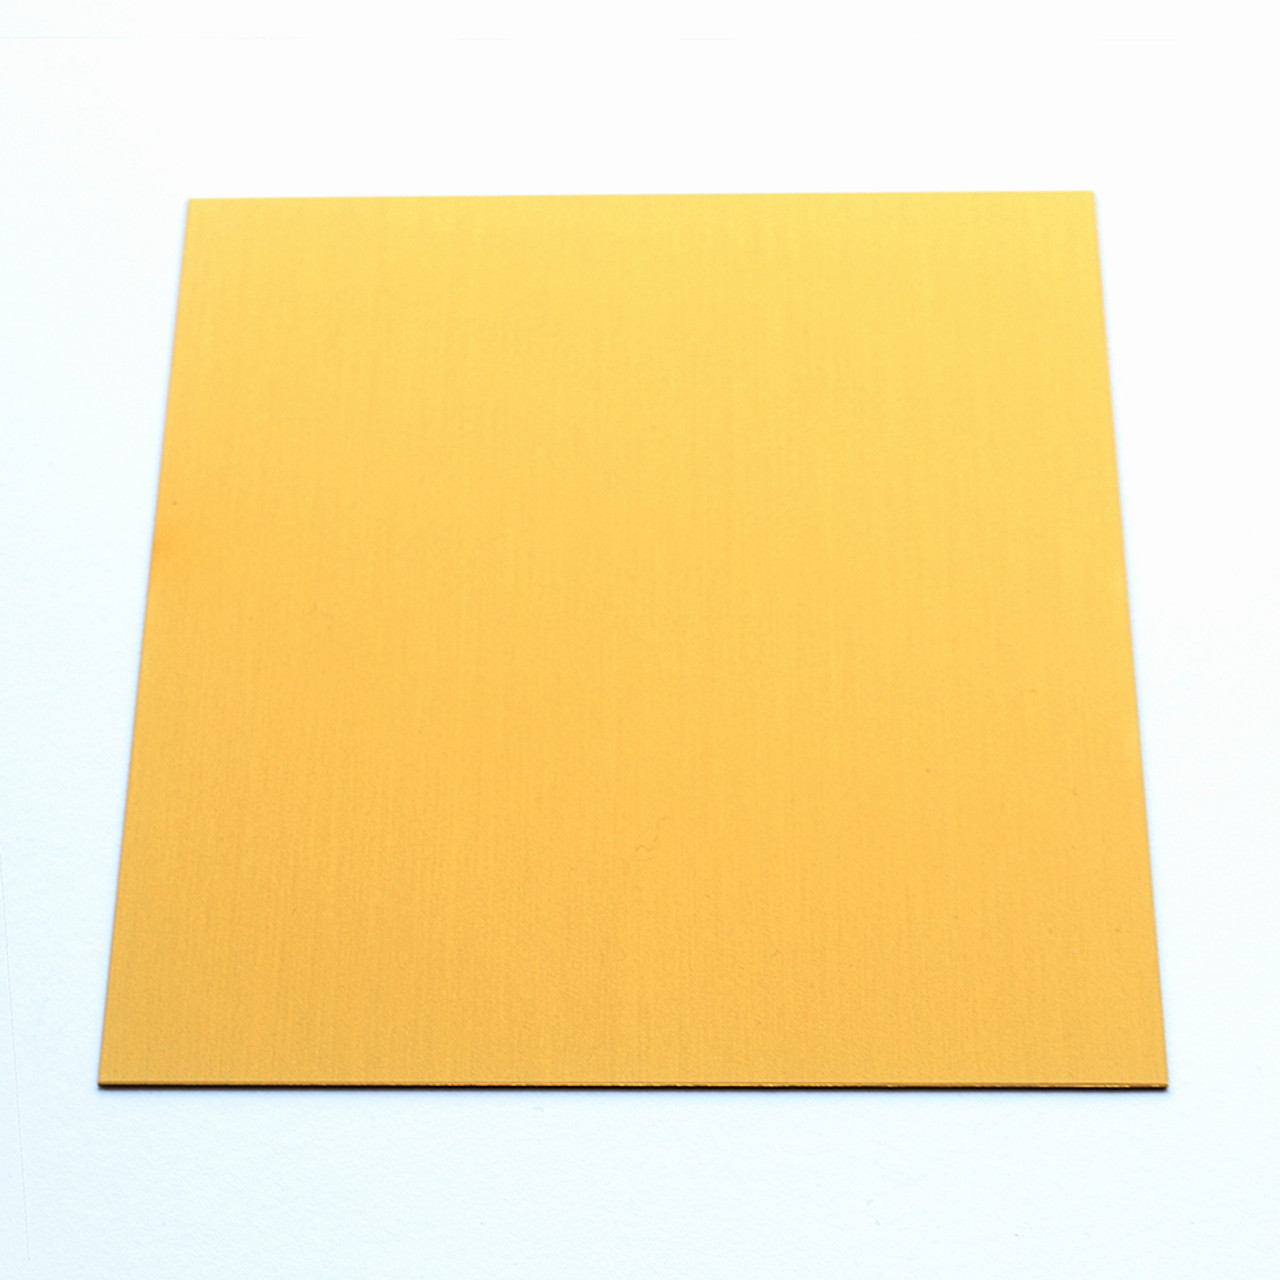 Anodised Aluminium Sheet, Gold